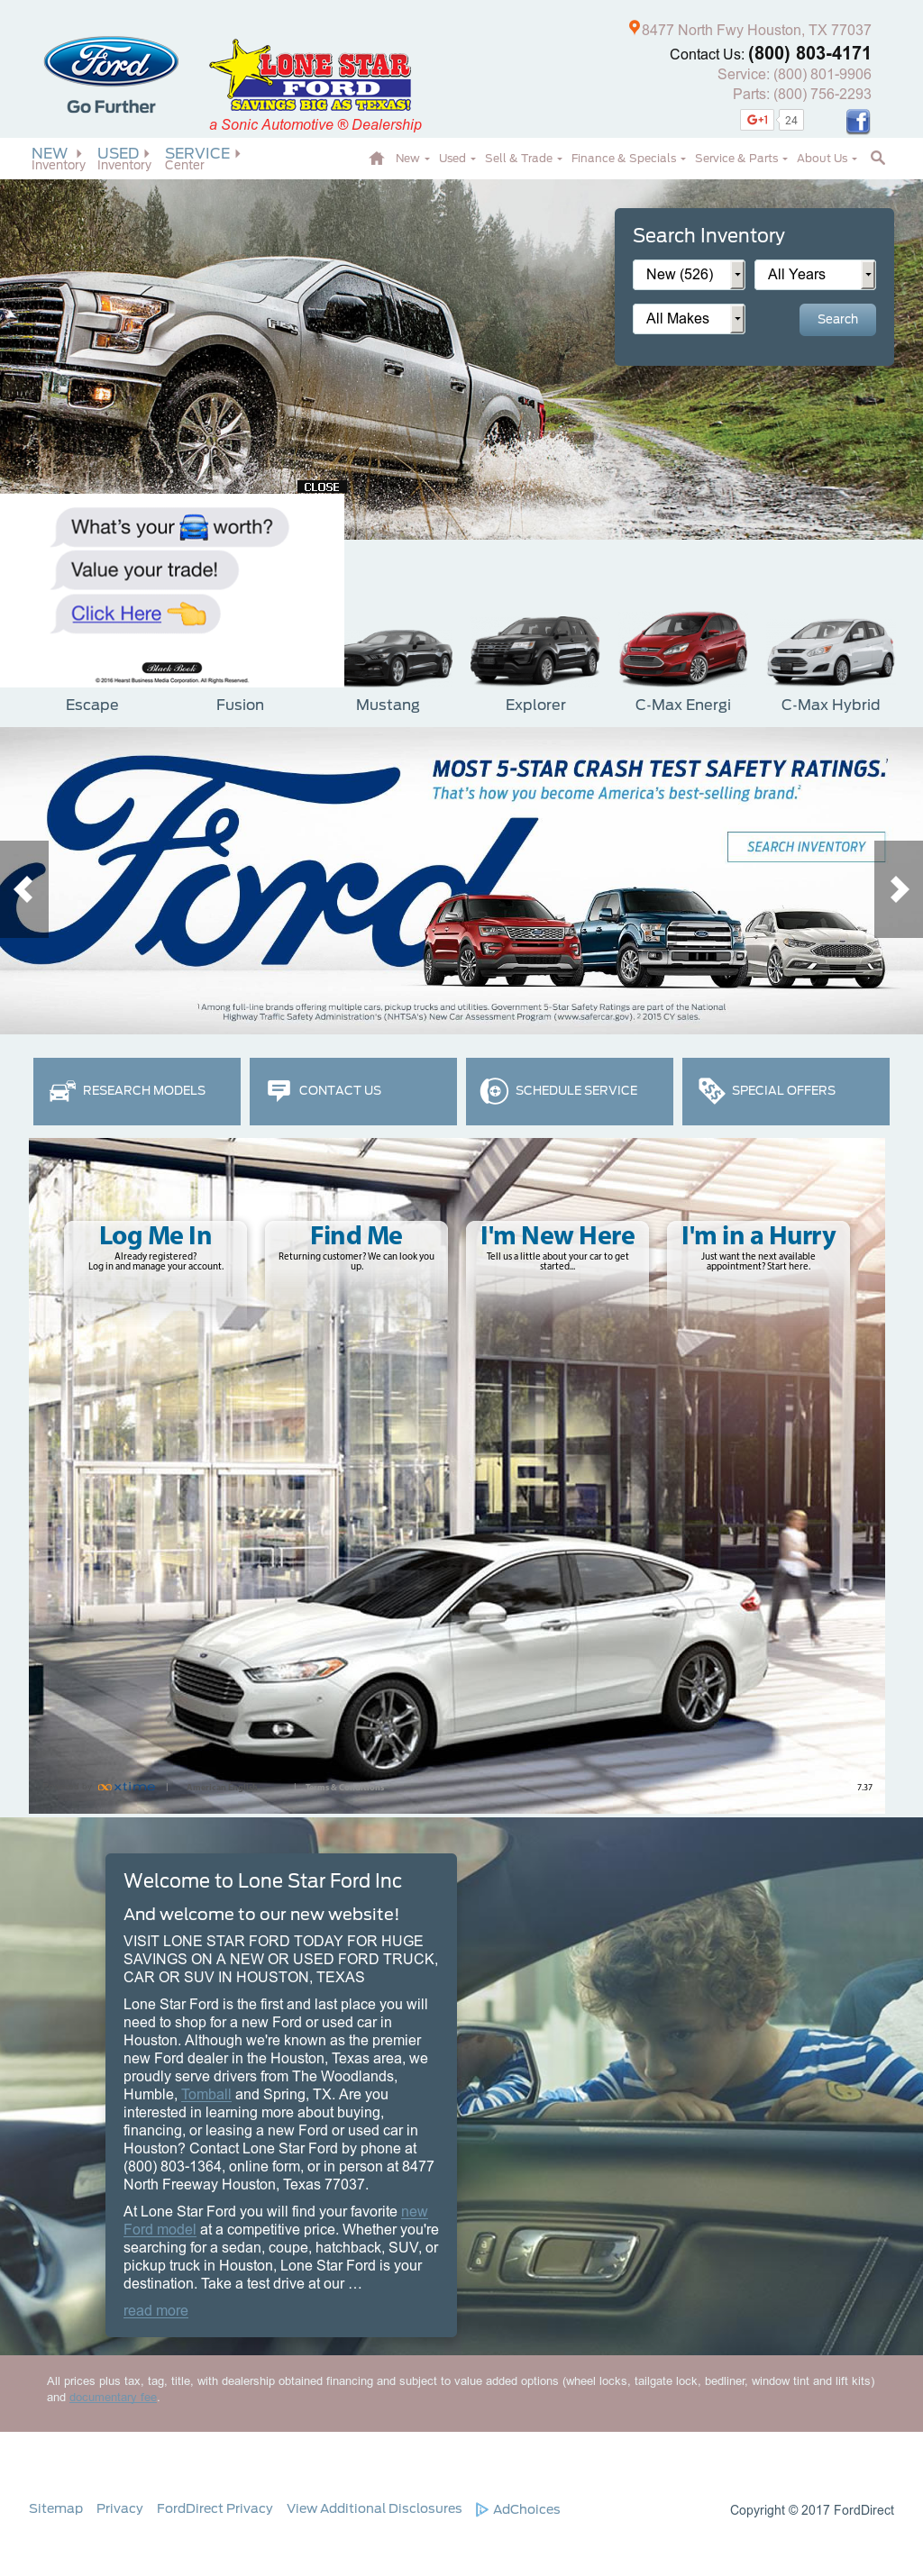 Dog t Ford petitors Revenue and Employees Owler pany Profile